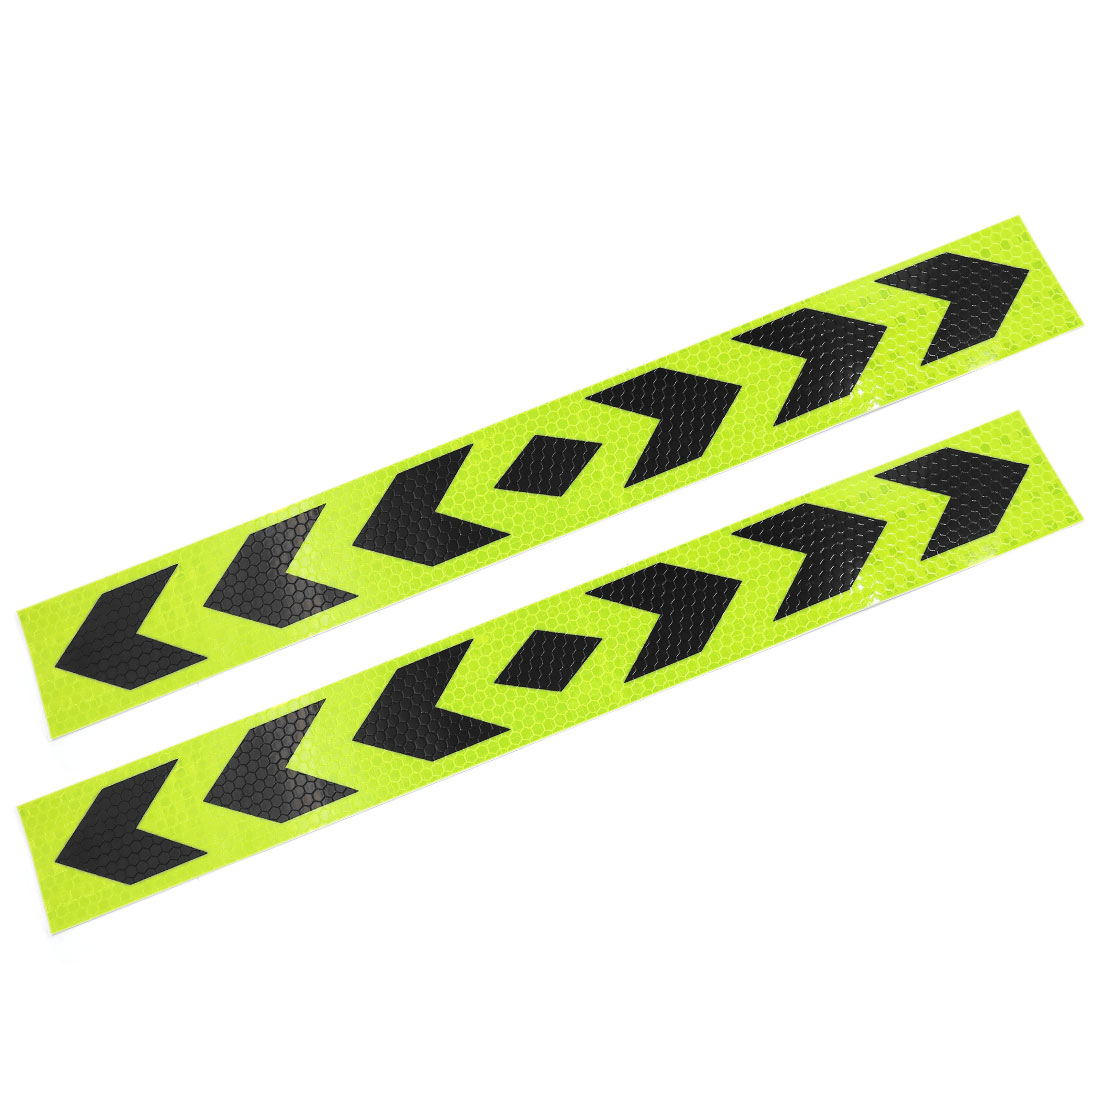 39cm Lenght Arrows Pattern Waring Sign Reflective Stickers 2 Pcs for Car SUV